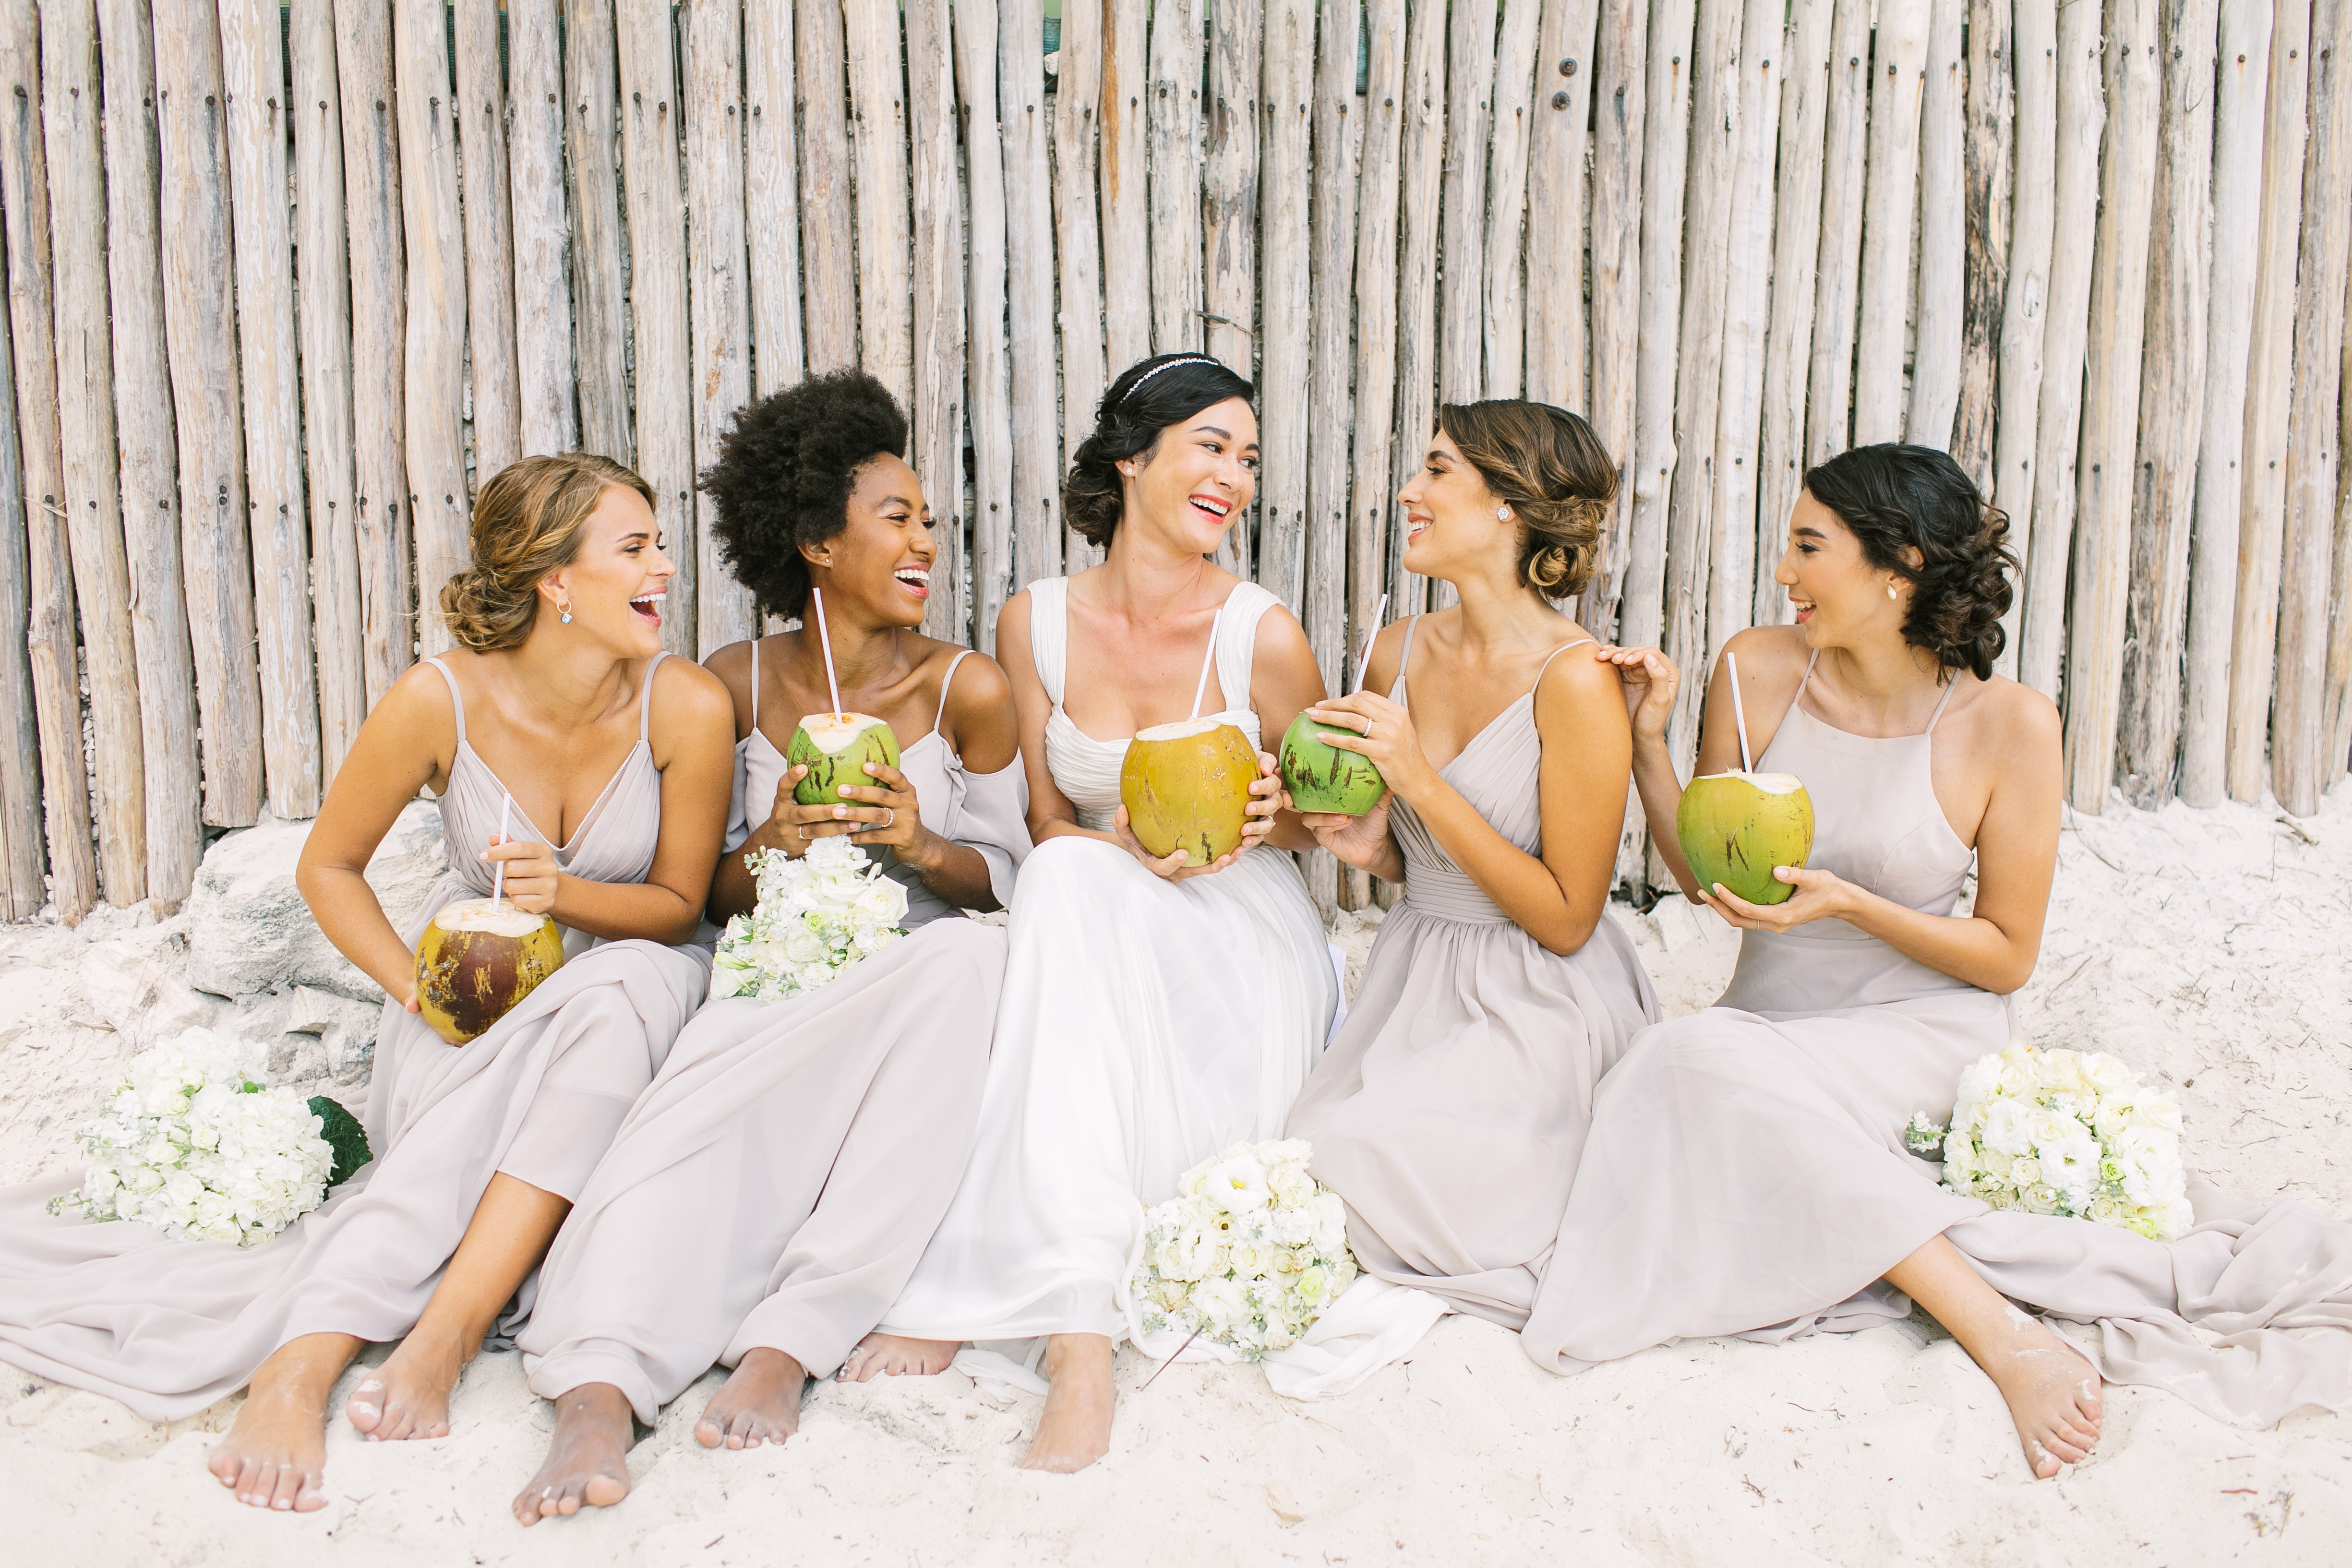 Here are top instagram-worthy moments you must capture on your wedding day! We took Kleinfeld Bridal wedding dresses and Kleinfeld Bridal Party bridesmaids dresses to Tulum, Mexico for a fun photoshoot on the beach full of flowers, sun, sand and fun!